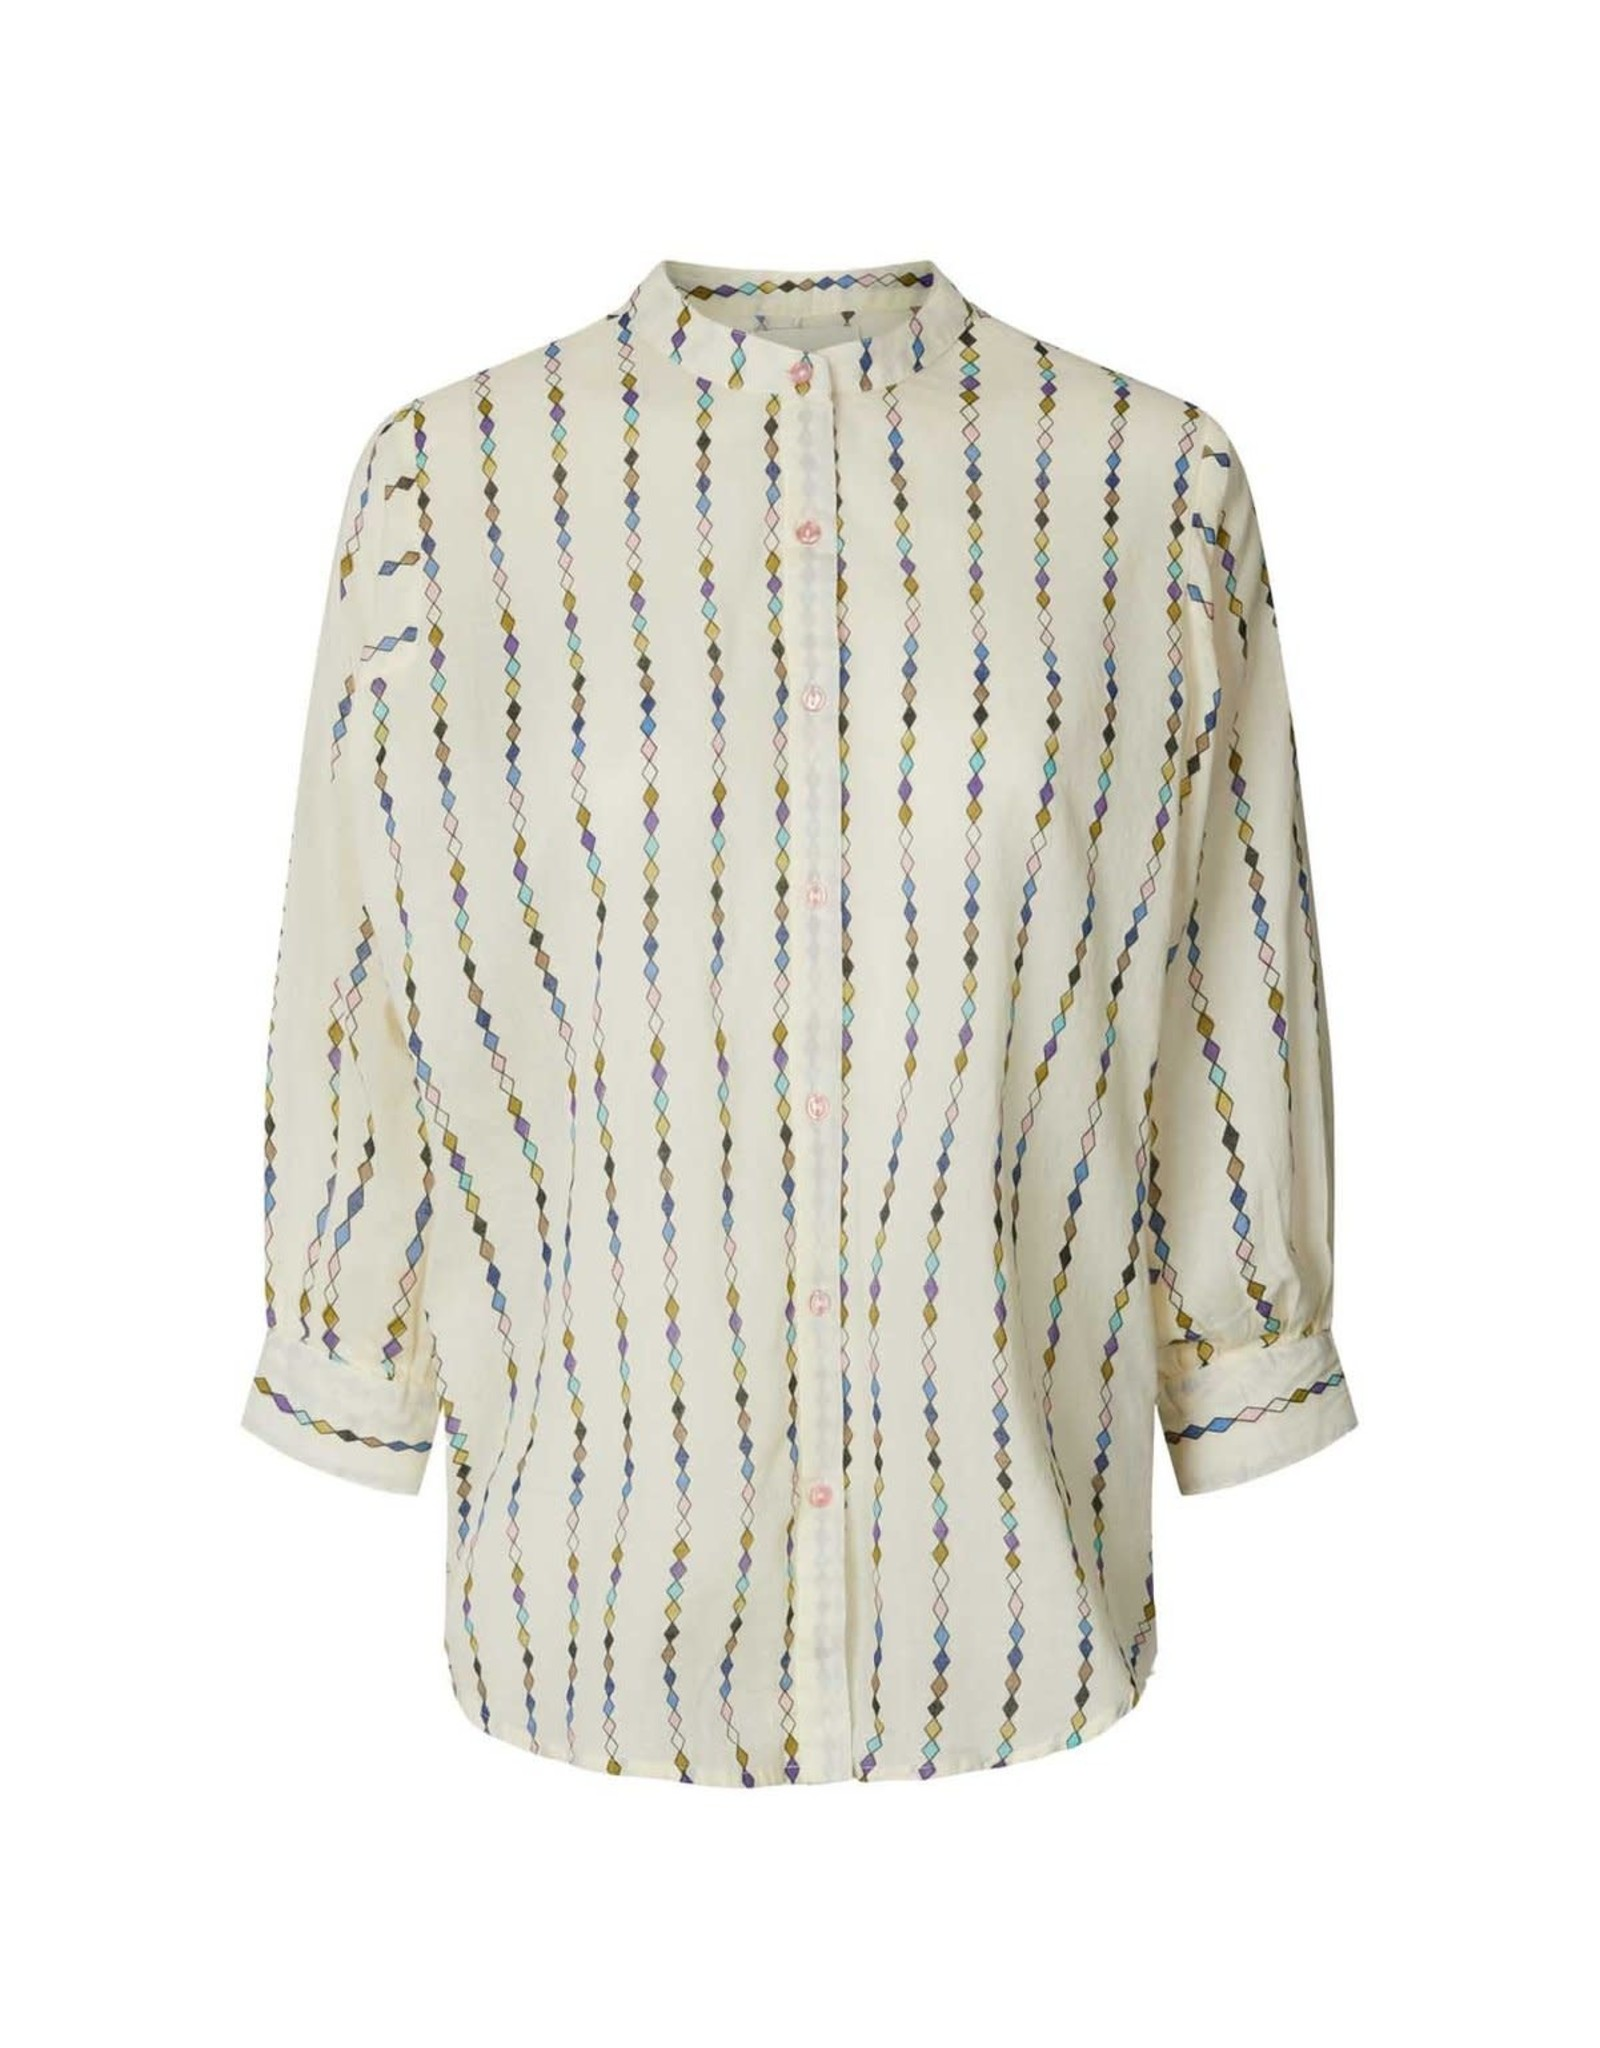 Lolly's Laundry Lollys Laundry - Ralph shirt - Multi